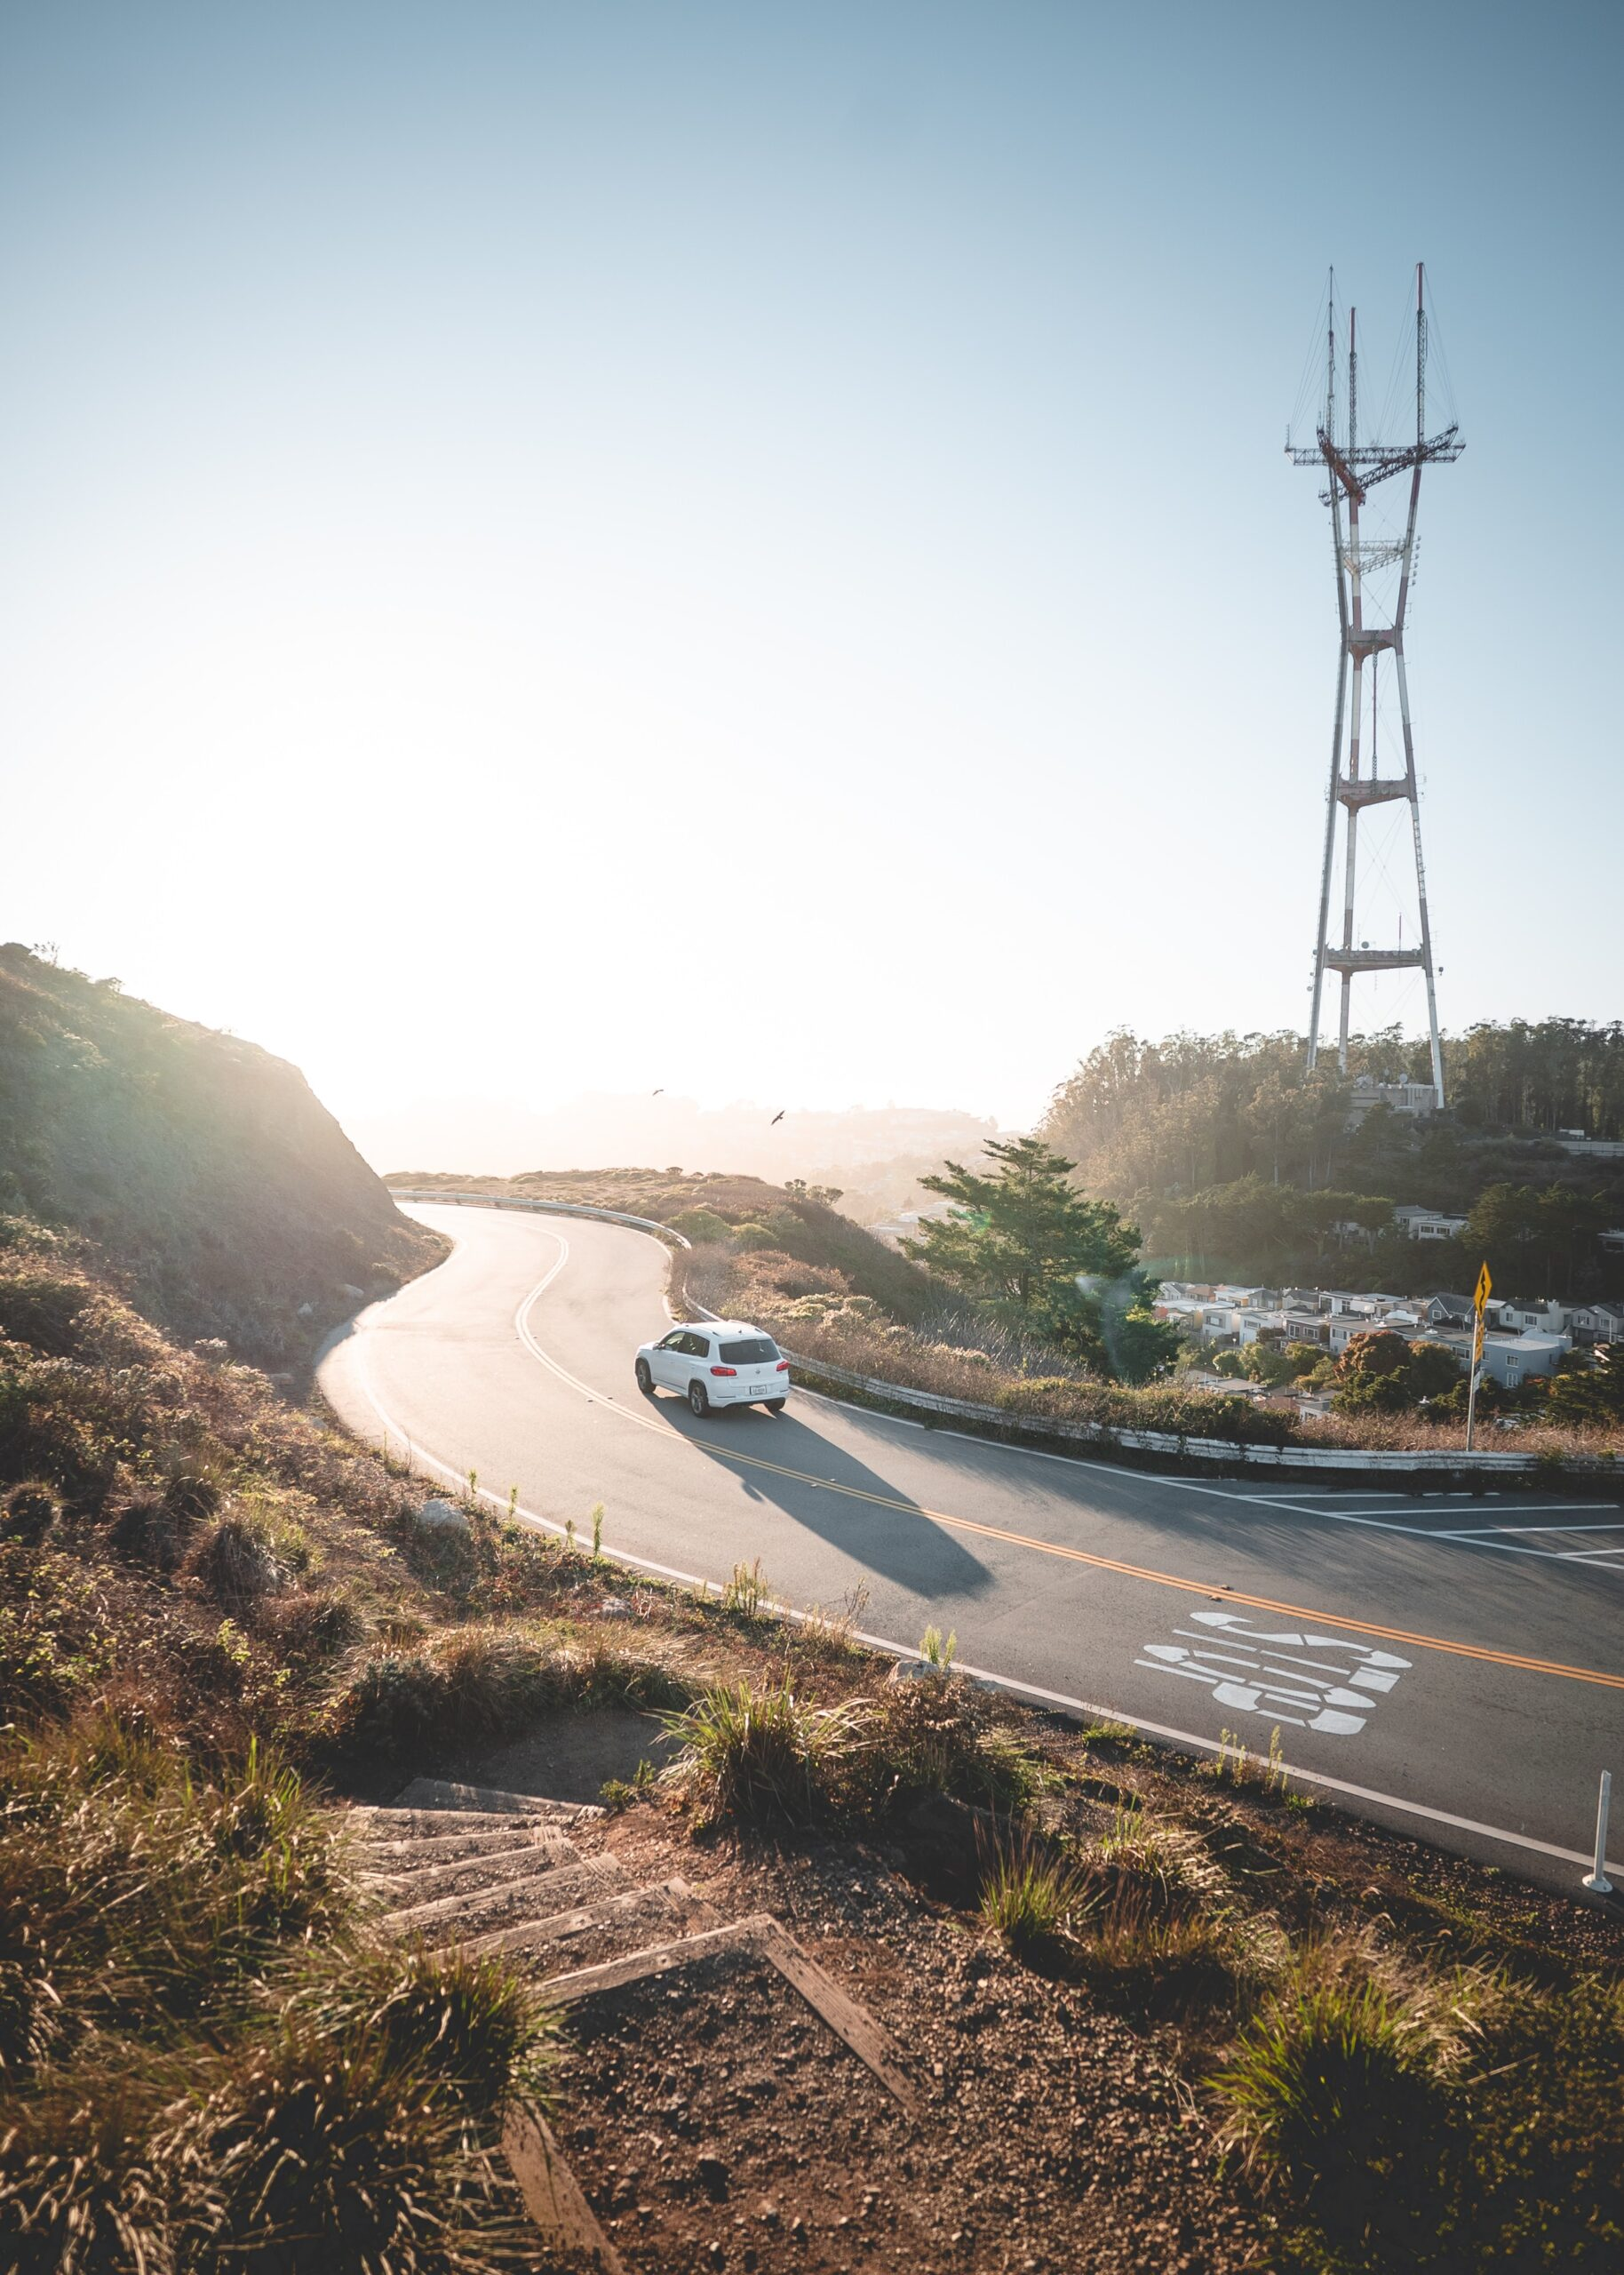 Our Founder's Top 5 Mobility Predictions by 2030